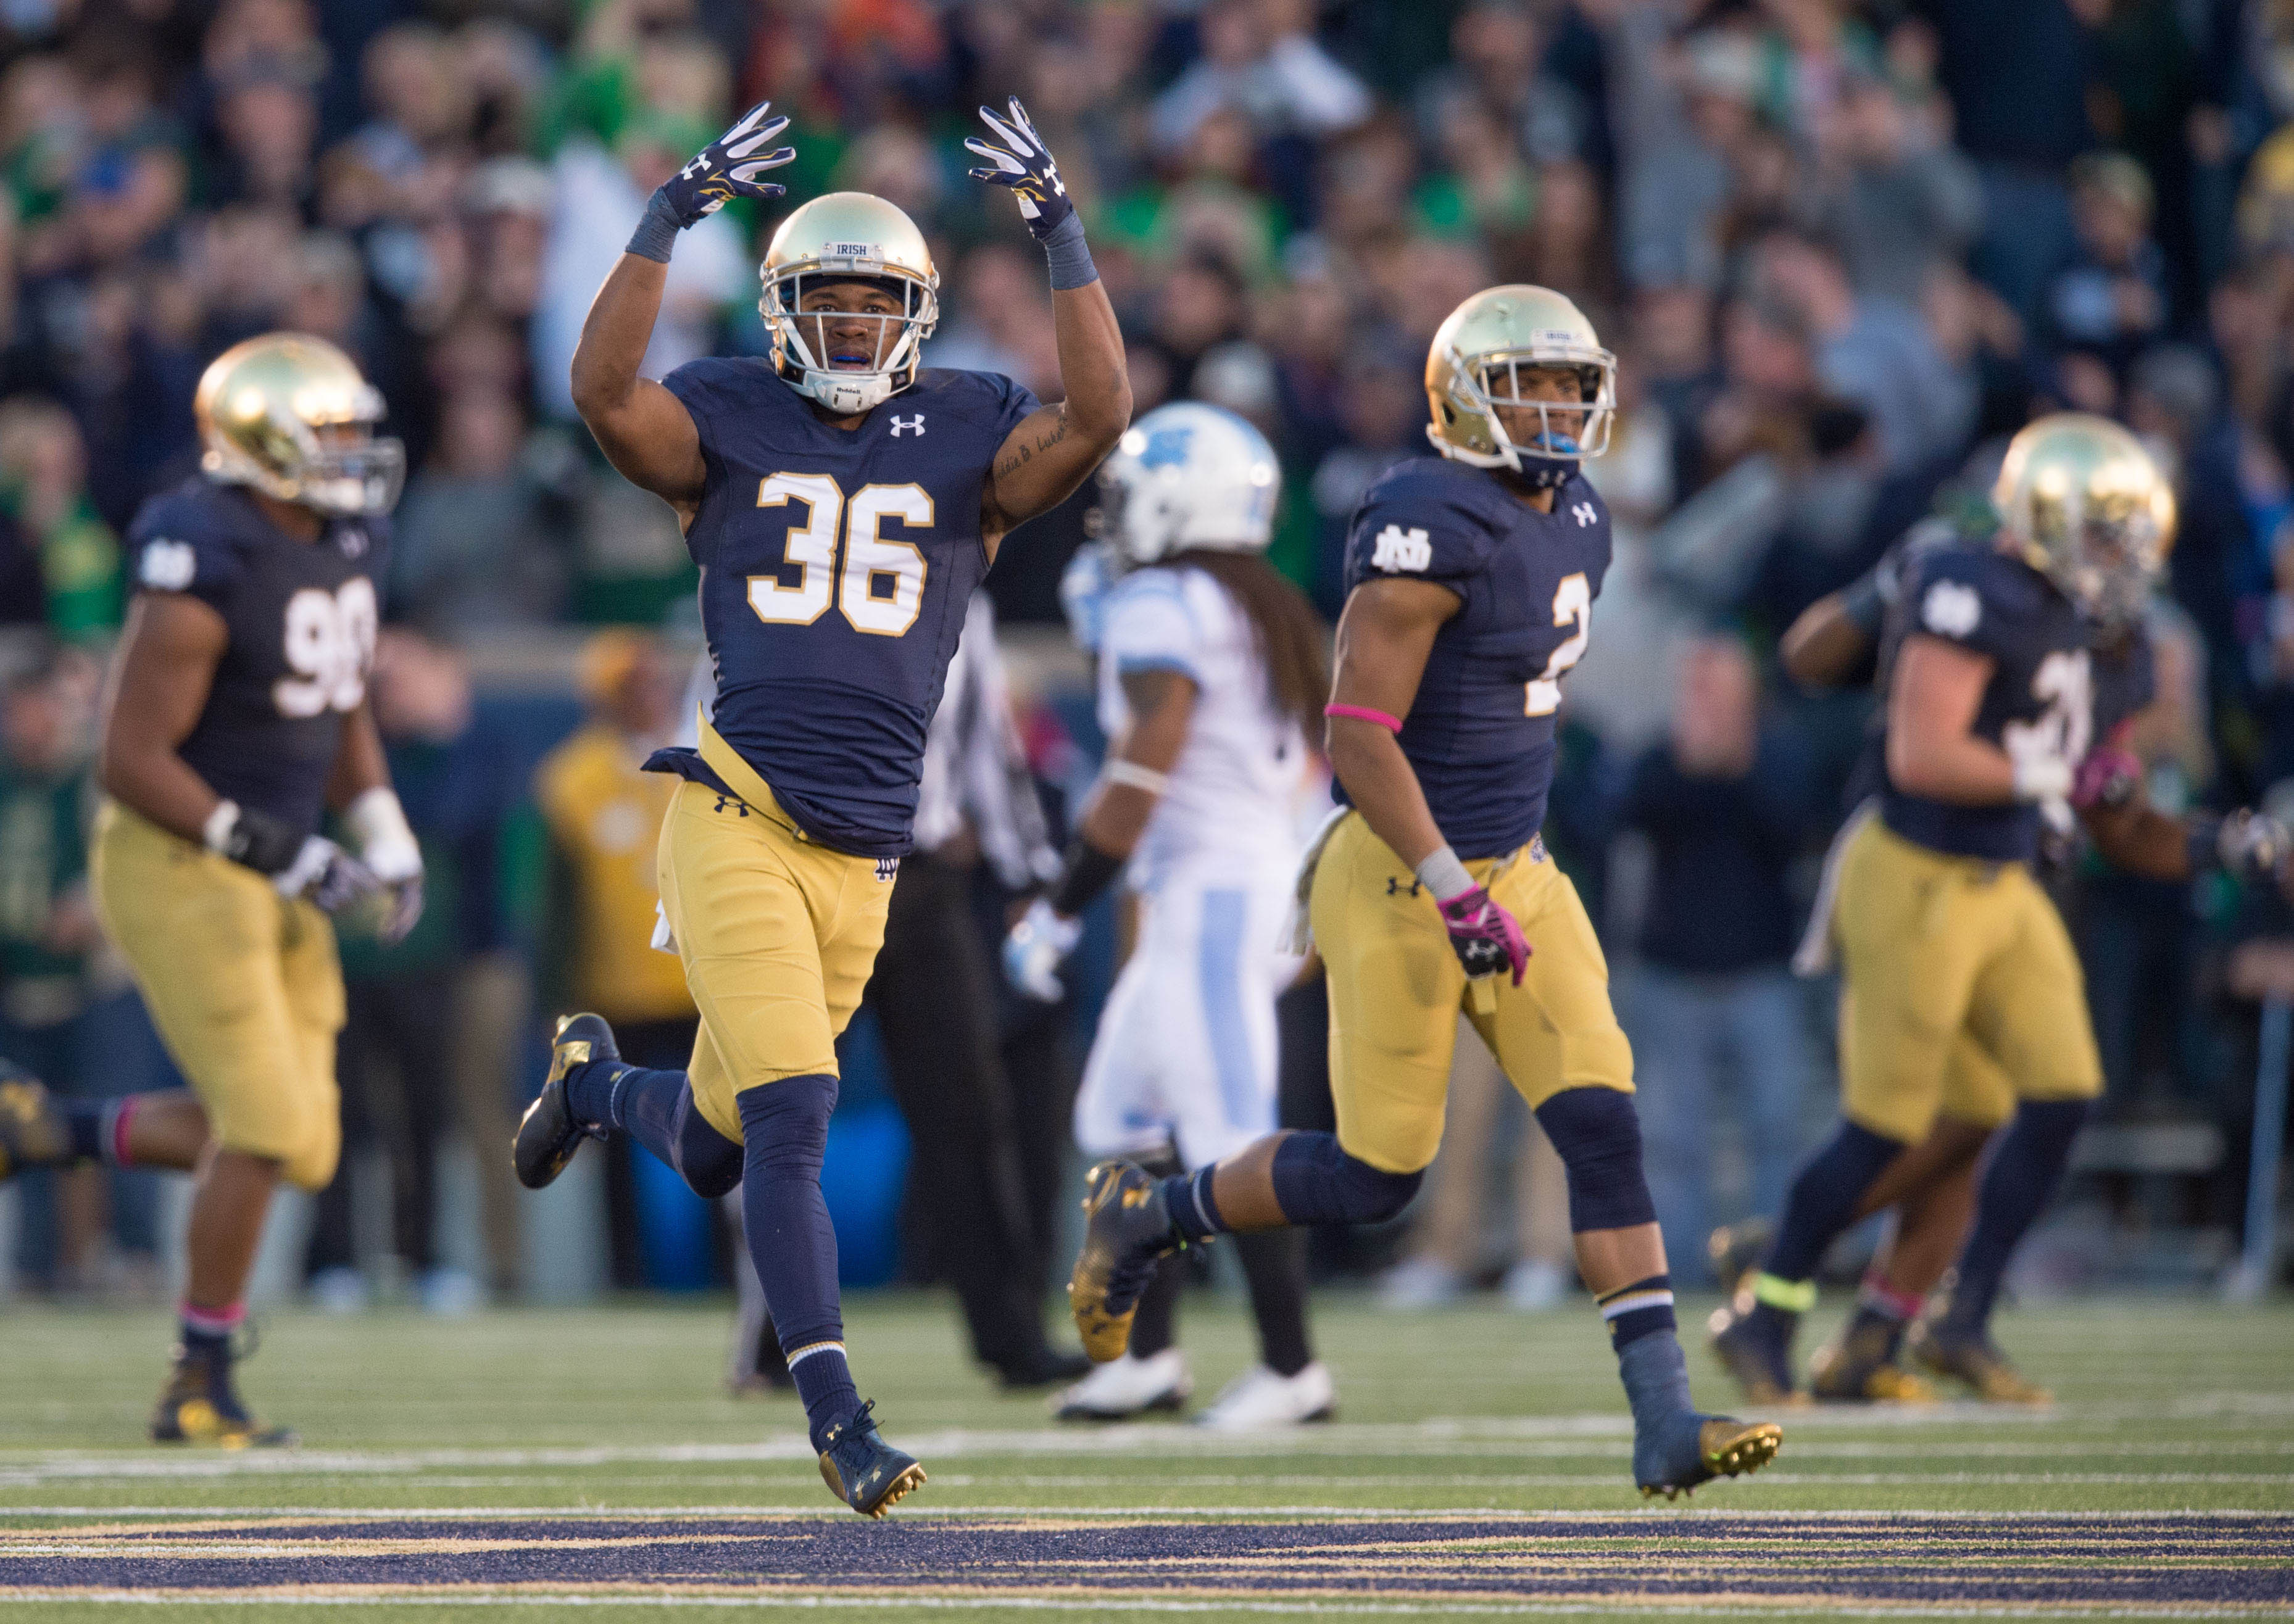 Notre Dame football has no excuse to finish outside the top 20